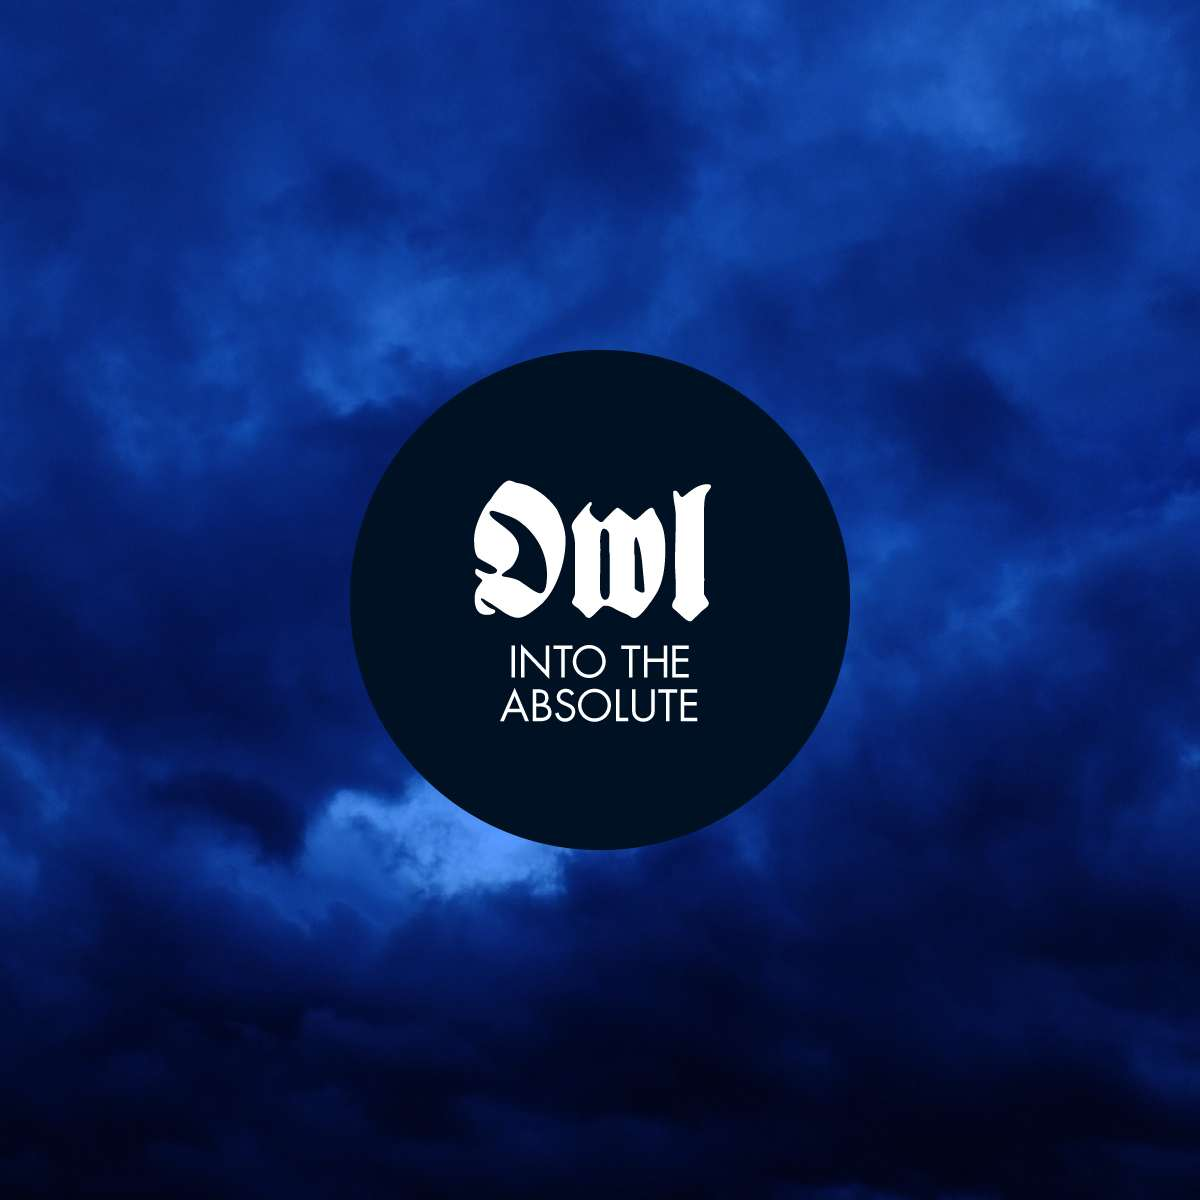 Owl - Into the Absolute